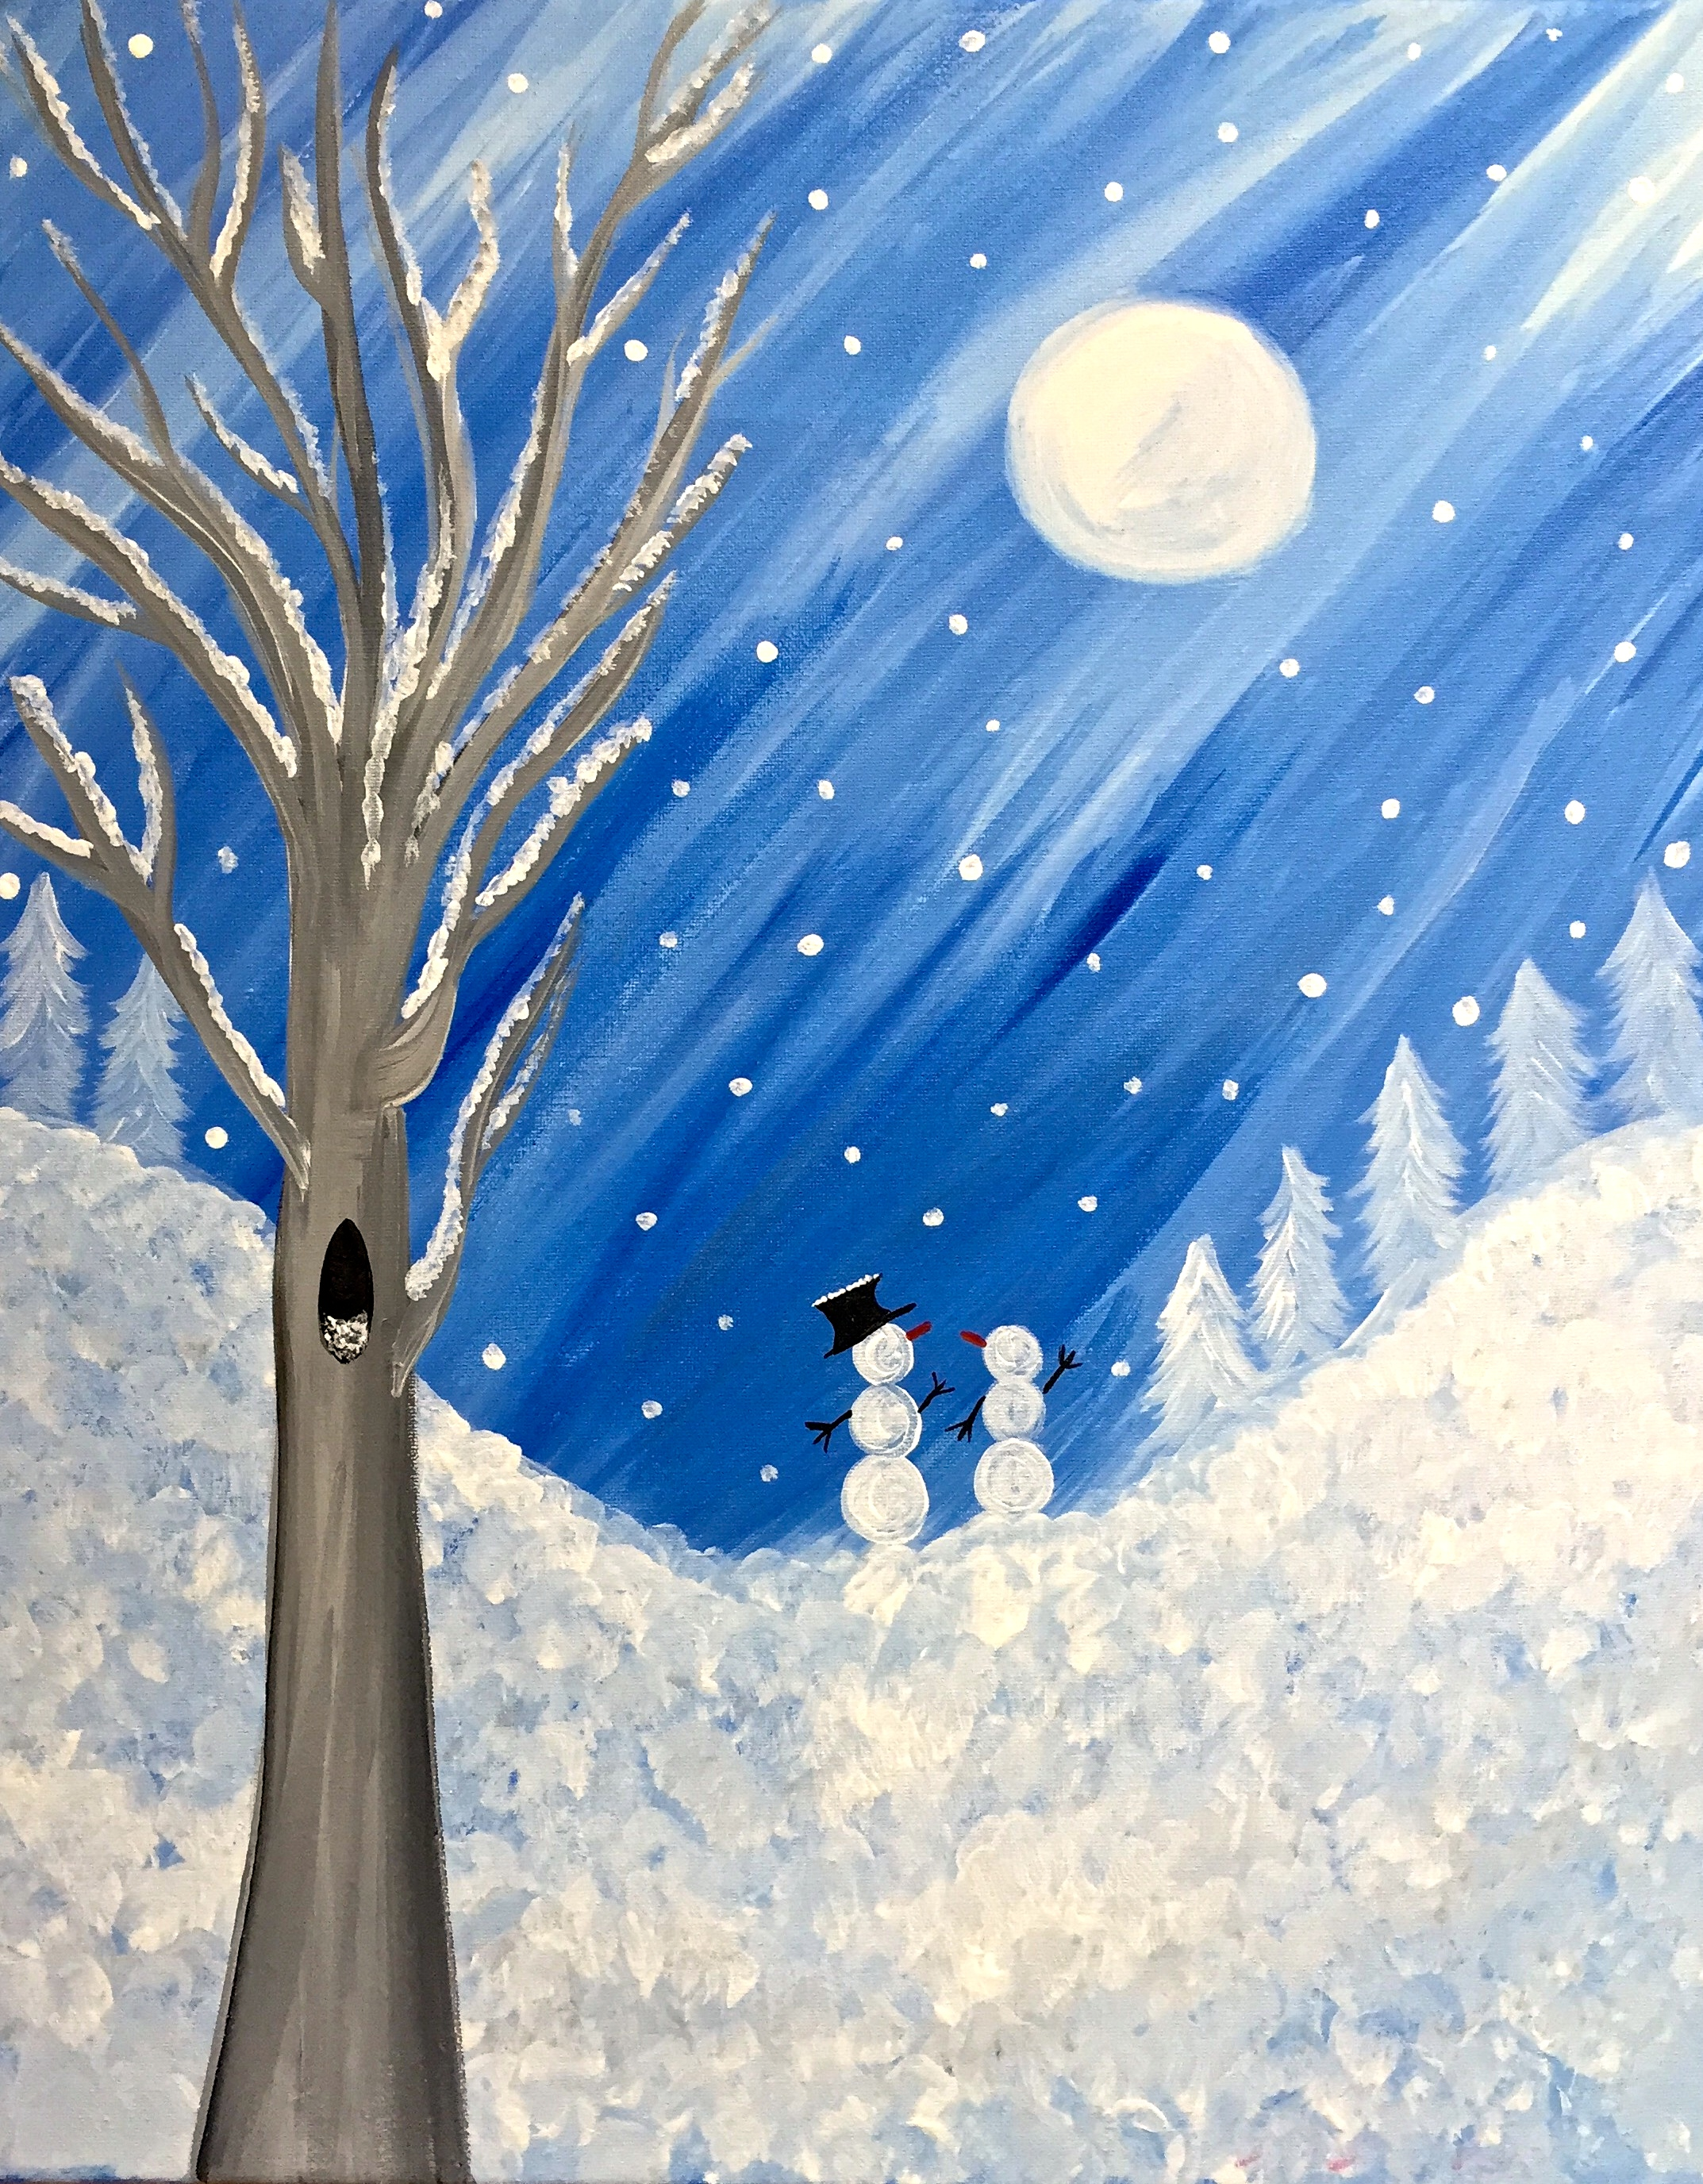 li pour house port jefferson 12 13 2015 paint nite event